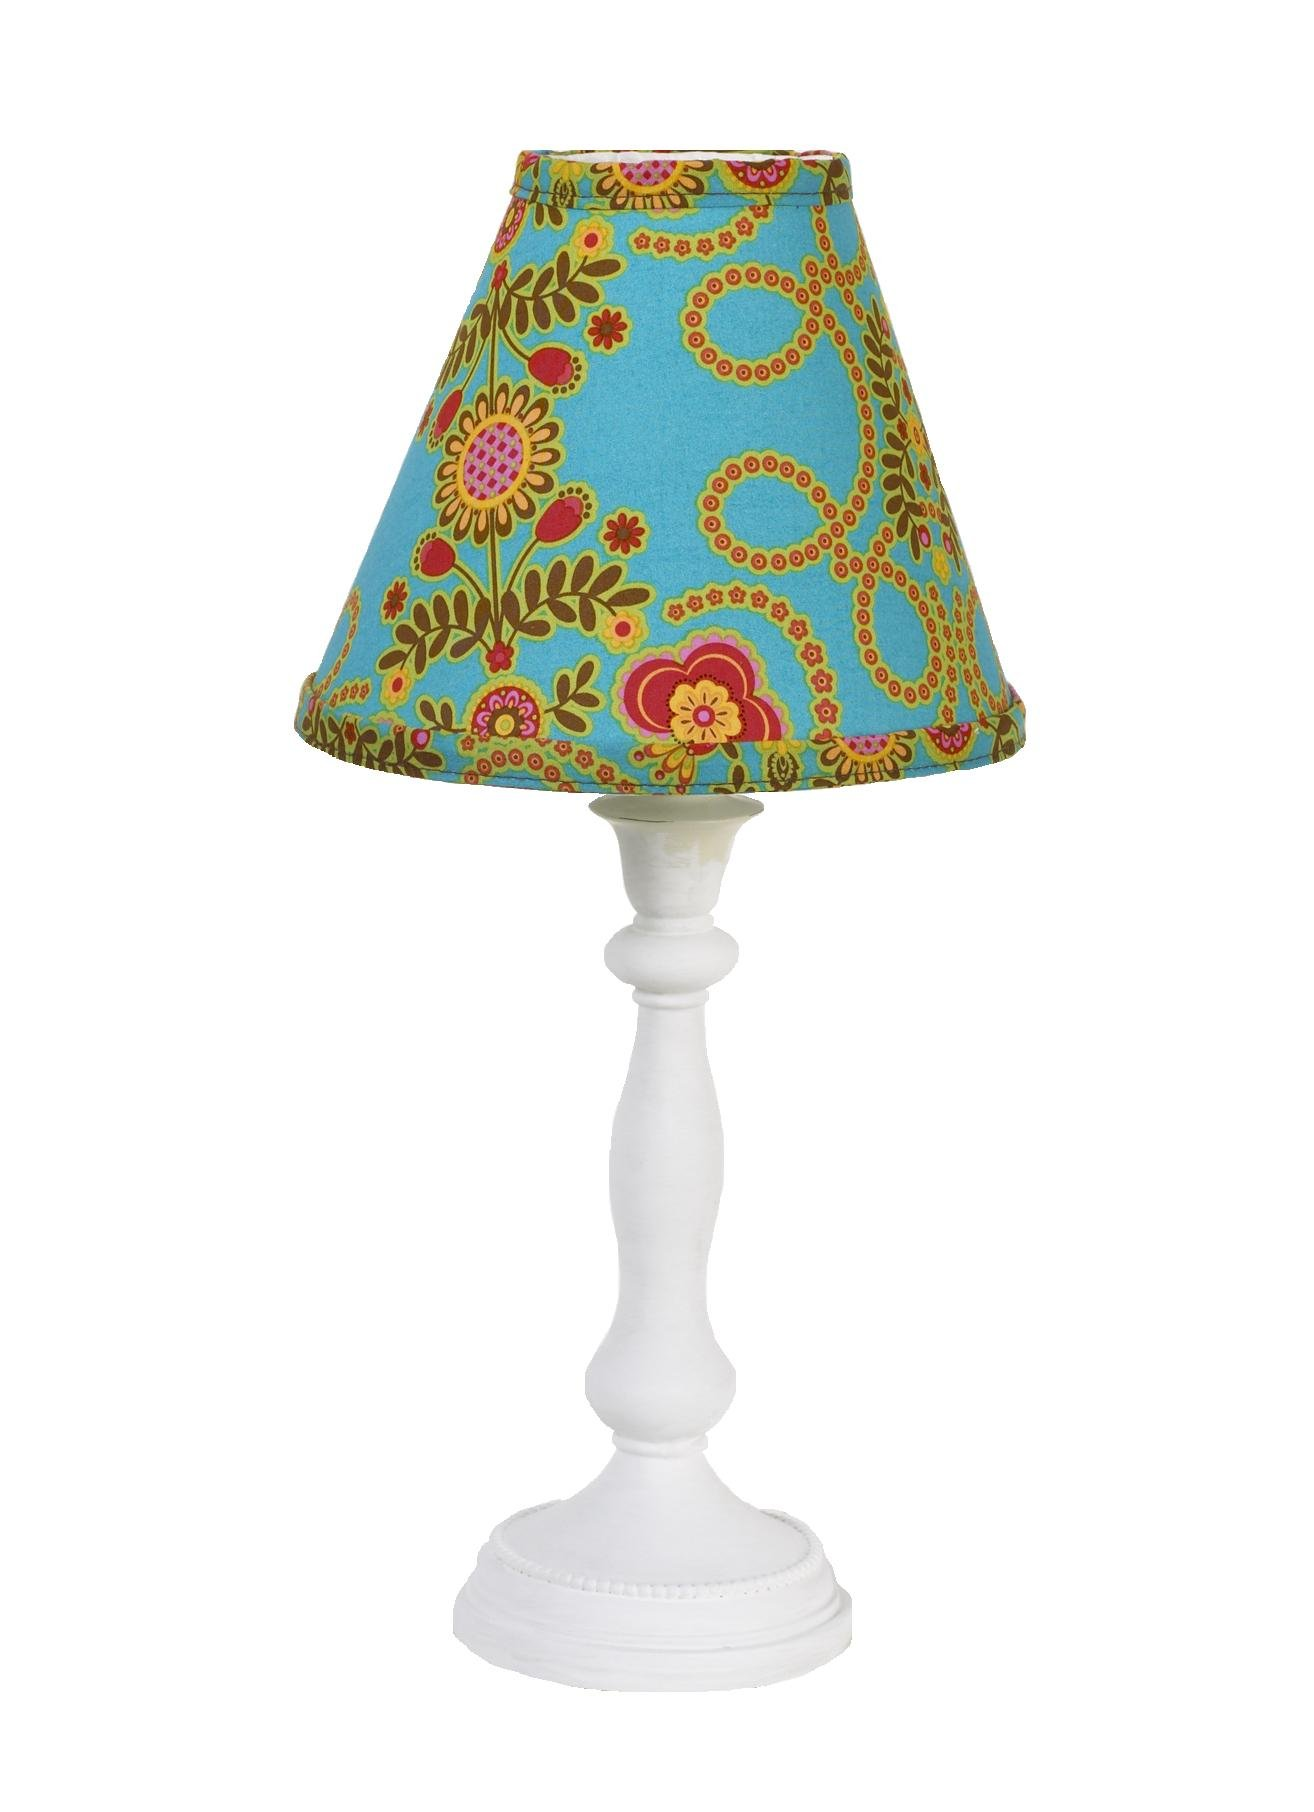 Cotton Tale Designs Gypsy Standard Lamp and Shade